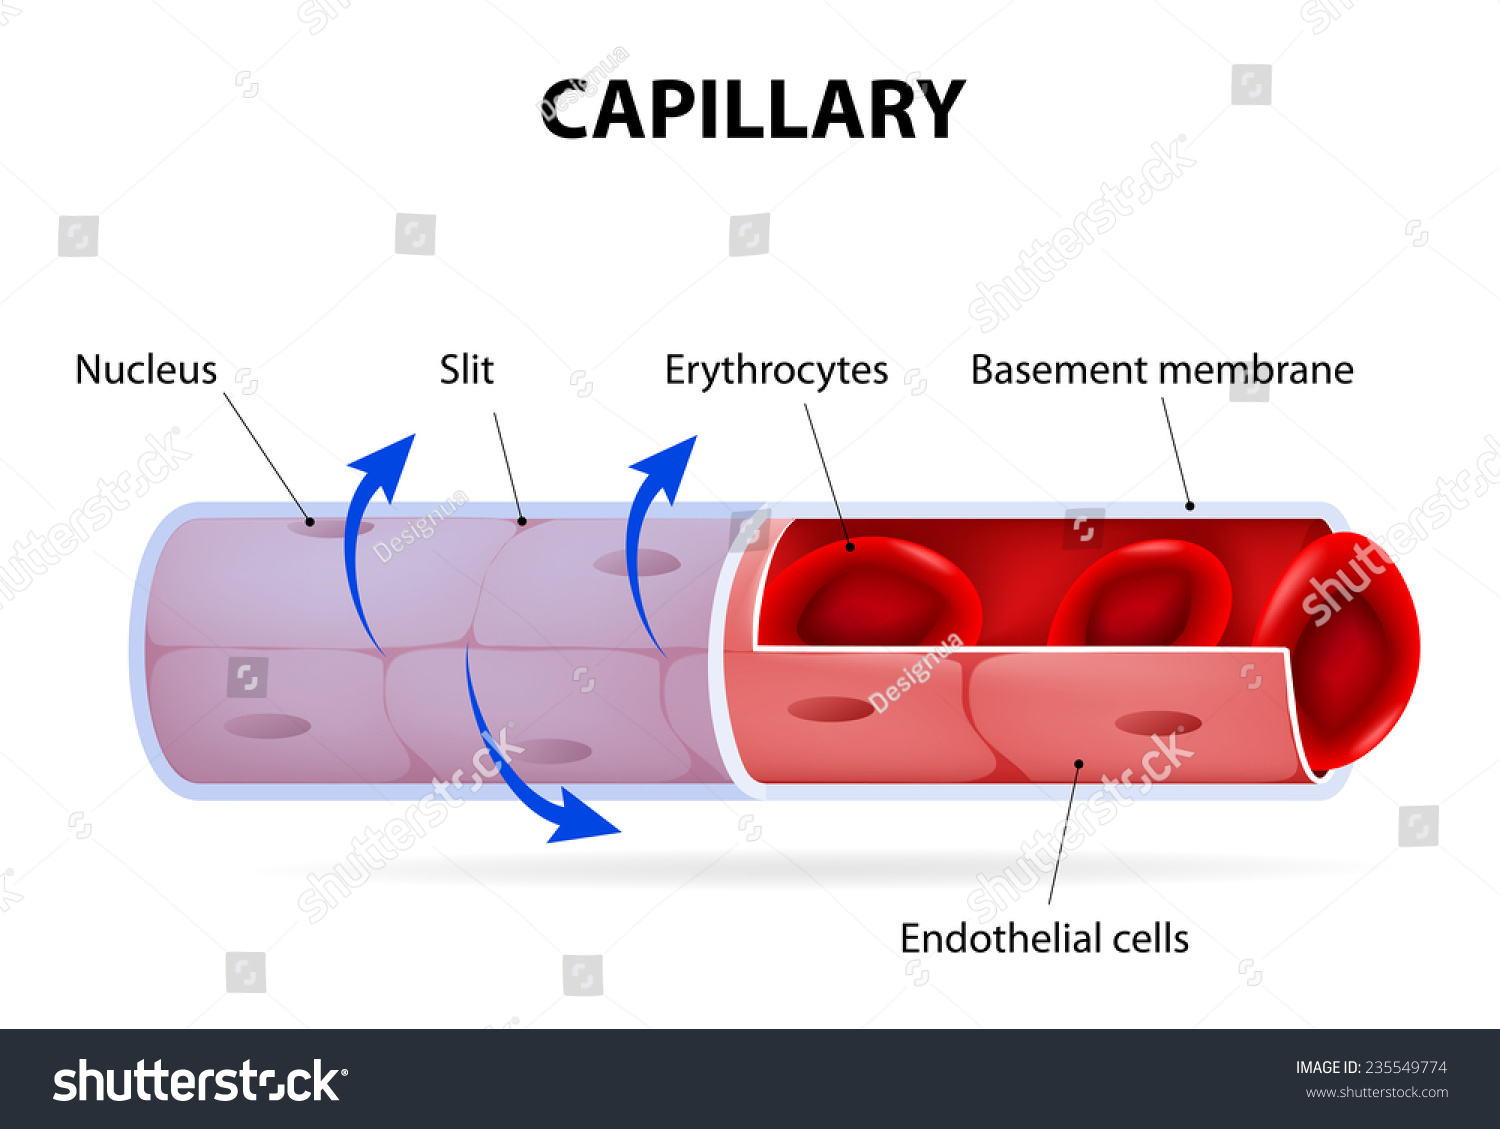 Capillary blood vessel labelled vector diagram stock vector capillary blood vessel labelled vector diagram pooptronica Image collections